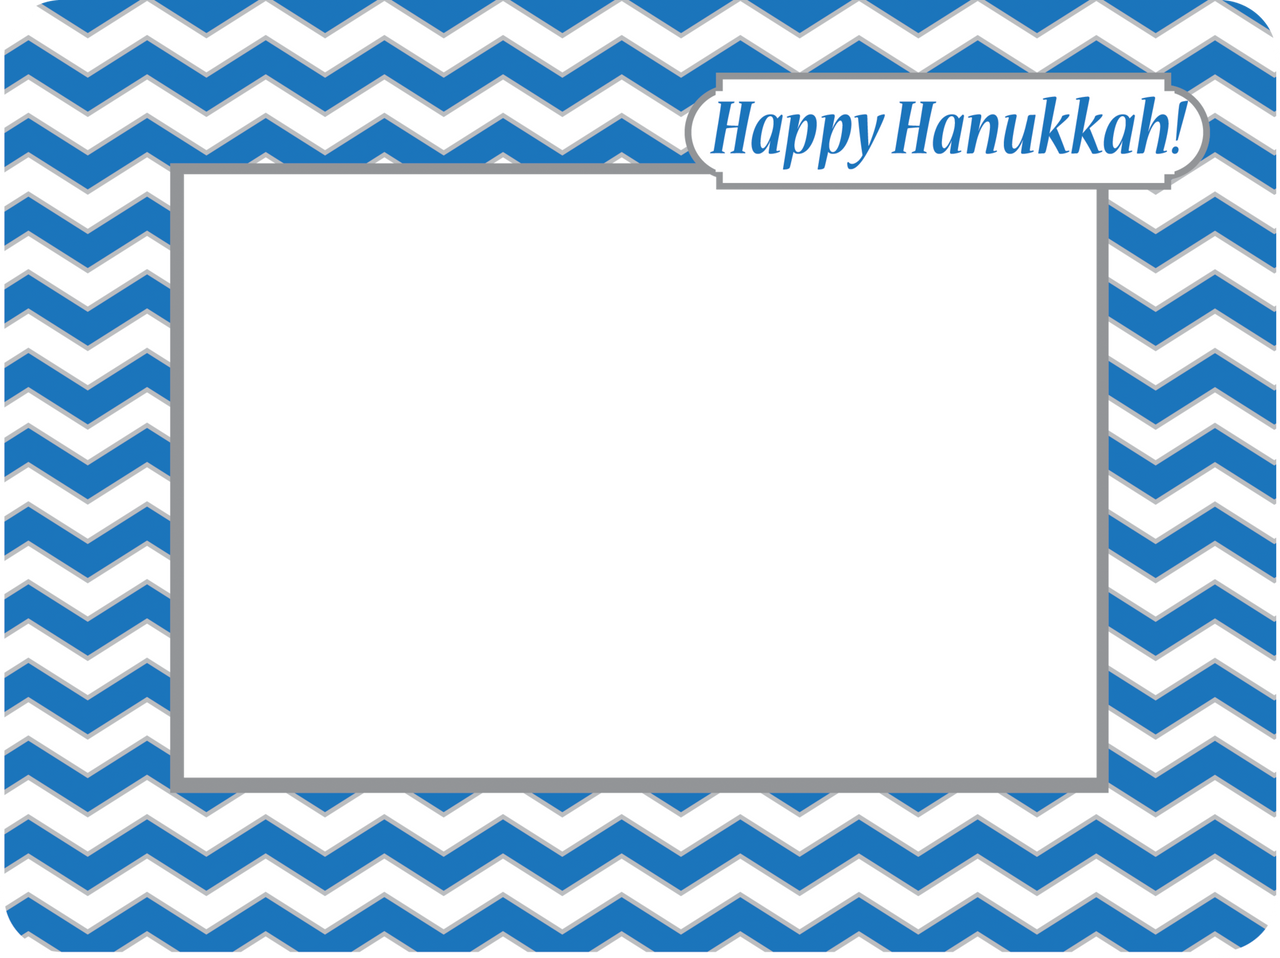 Fodeez Peel & Stick Hanukkah Card - Chevron - Fodeez® Adhesive Display Frames / Dry Erase Boards  - 6